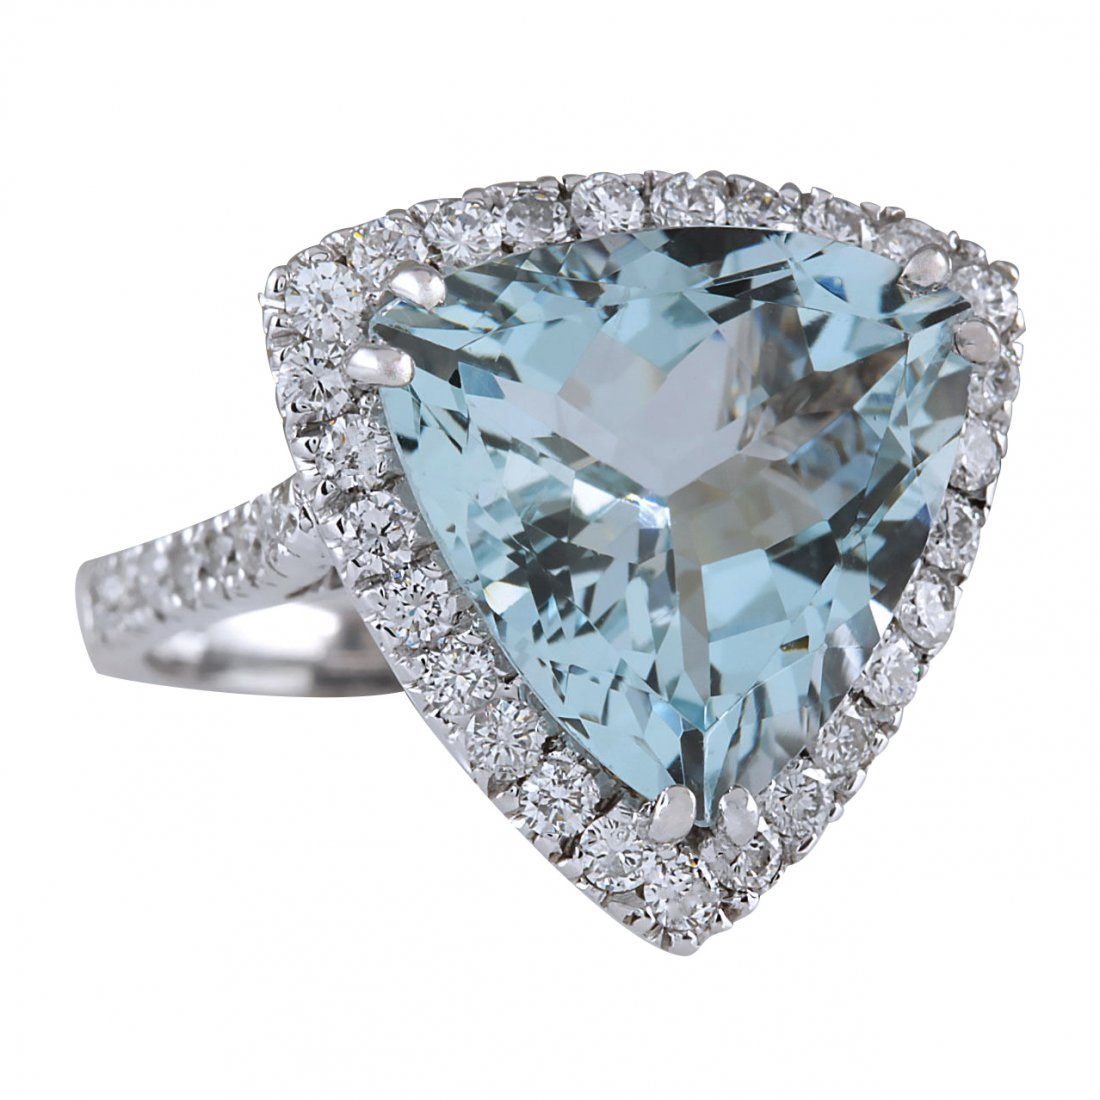 8.96CTW Natural Aquamarine And Diamond Ring In 14K - 2